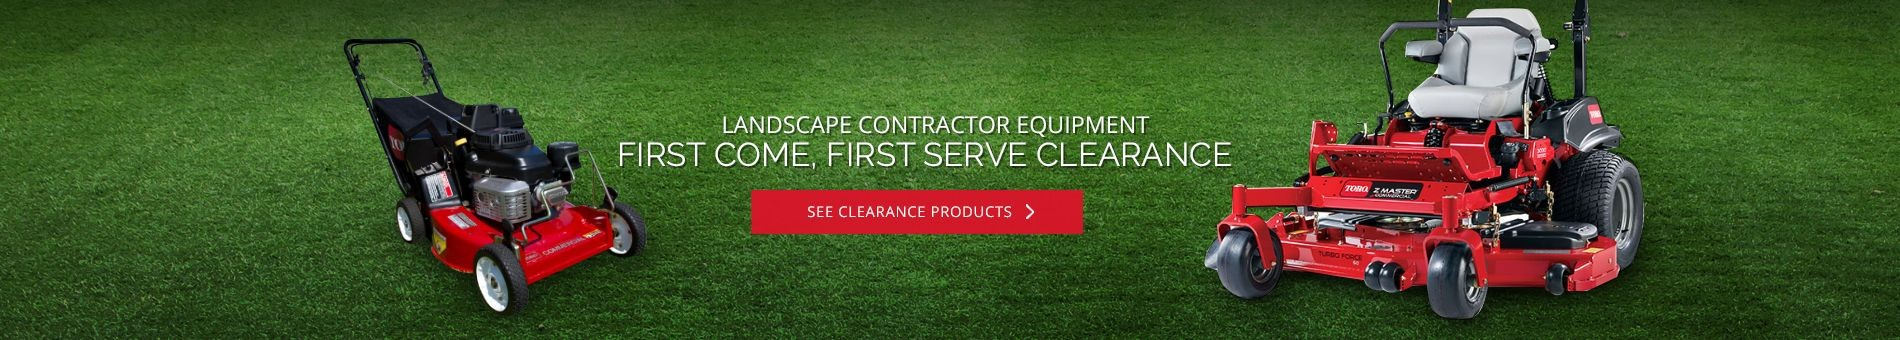 Landscape Contractor Equipment Clearance